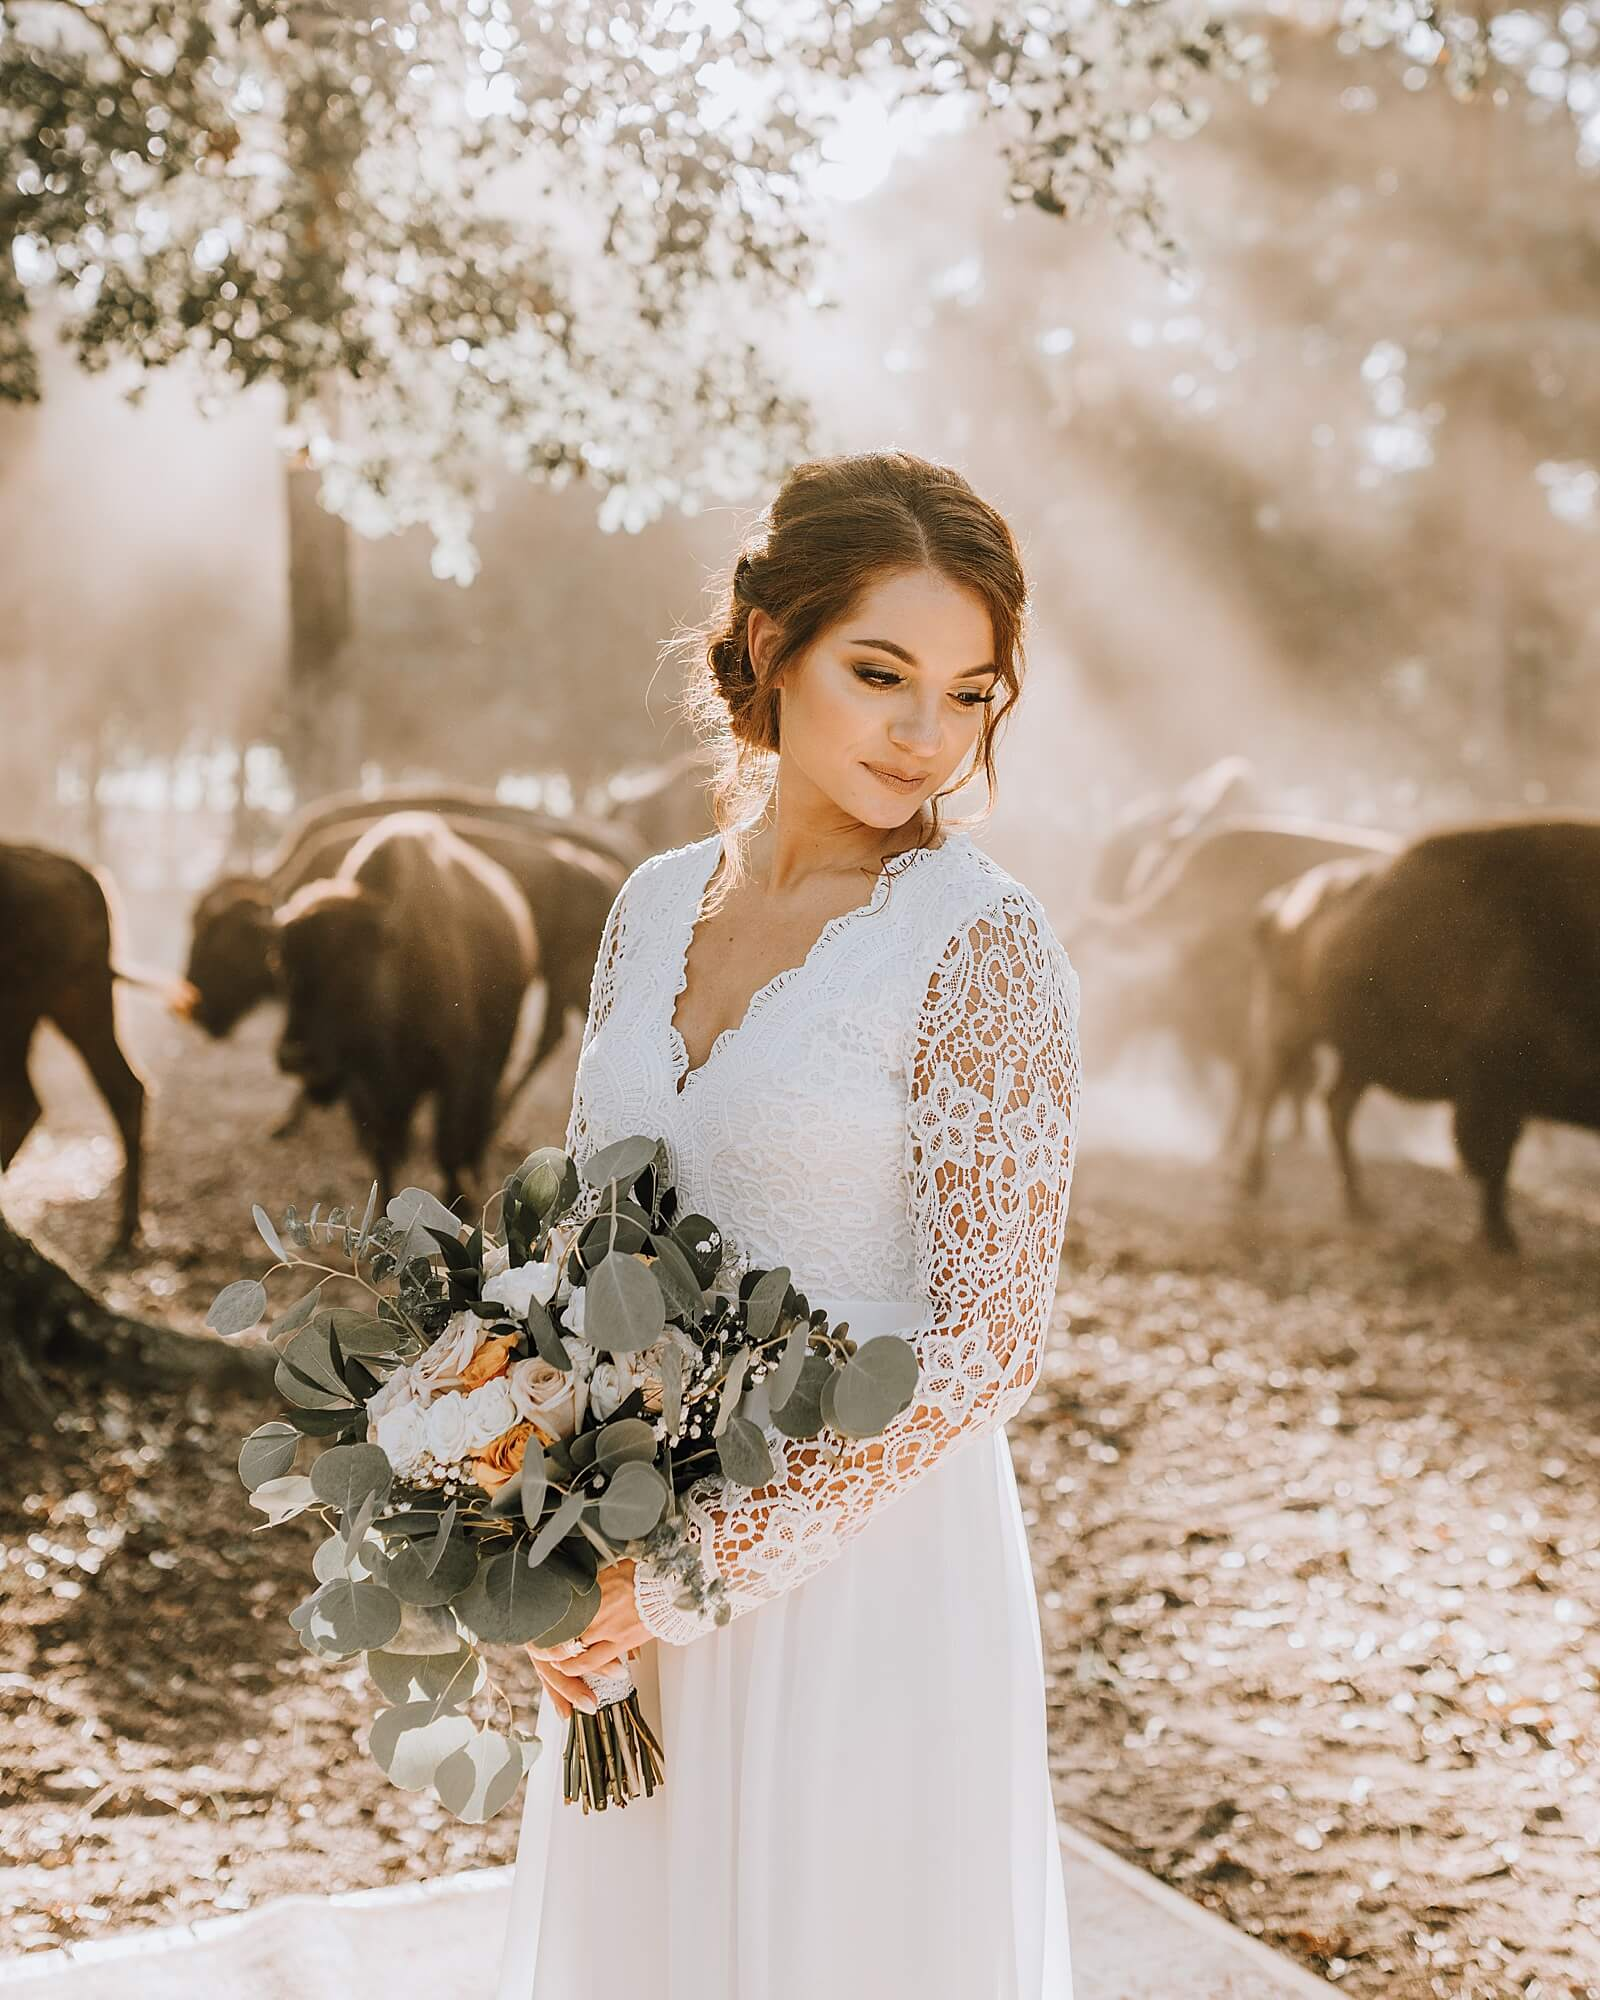 Sun shines down on bride standing in front of buffalo at The Annex wedding venue